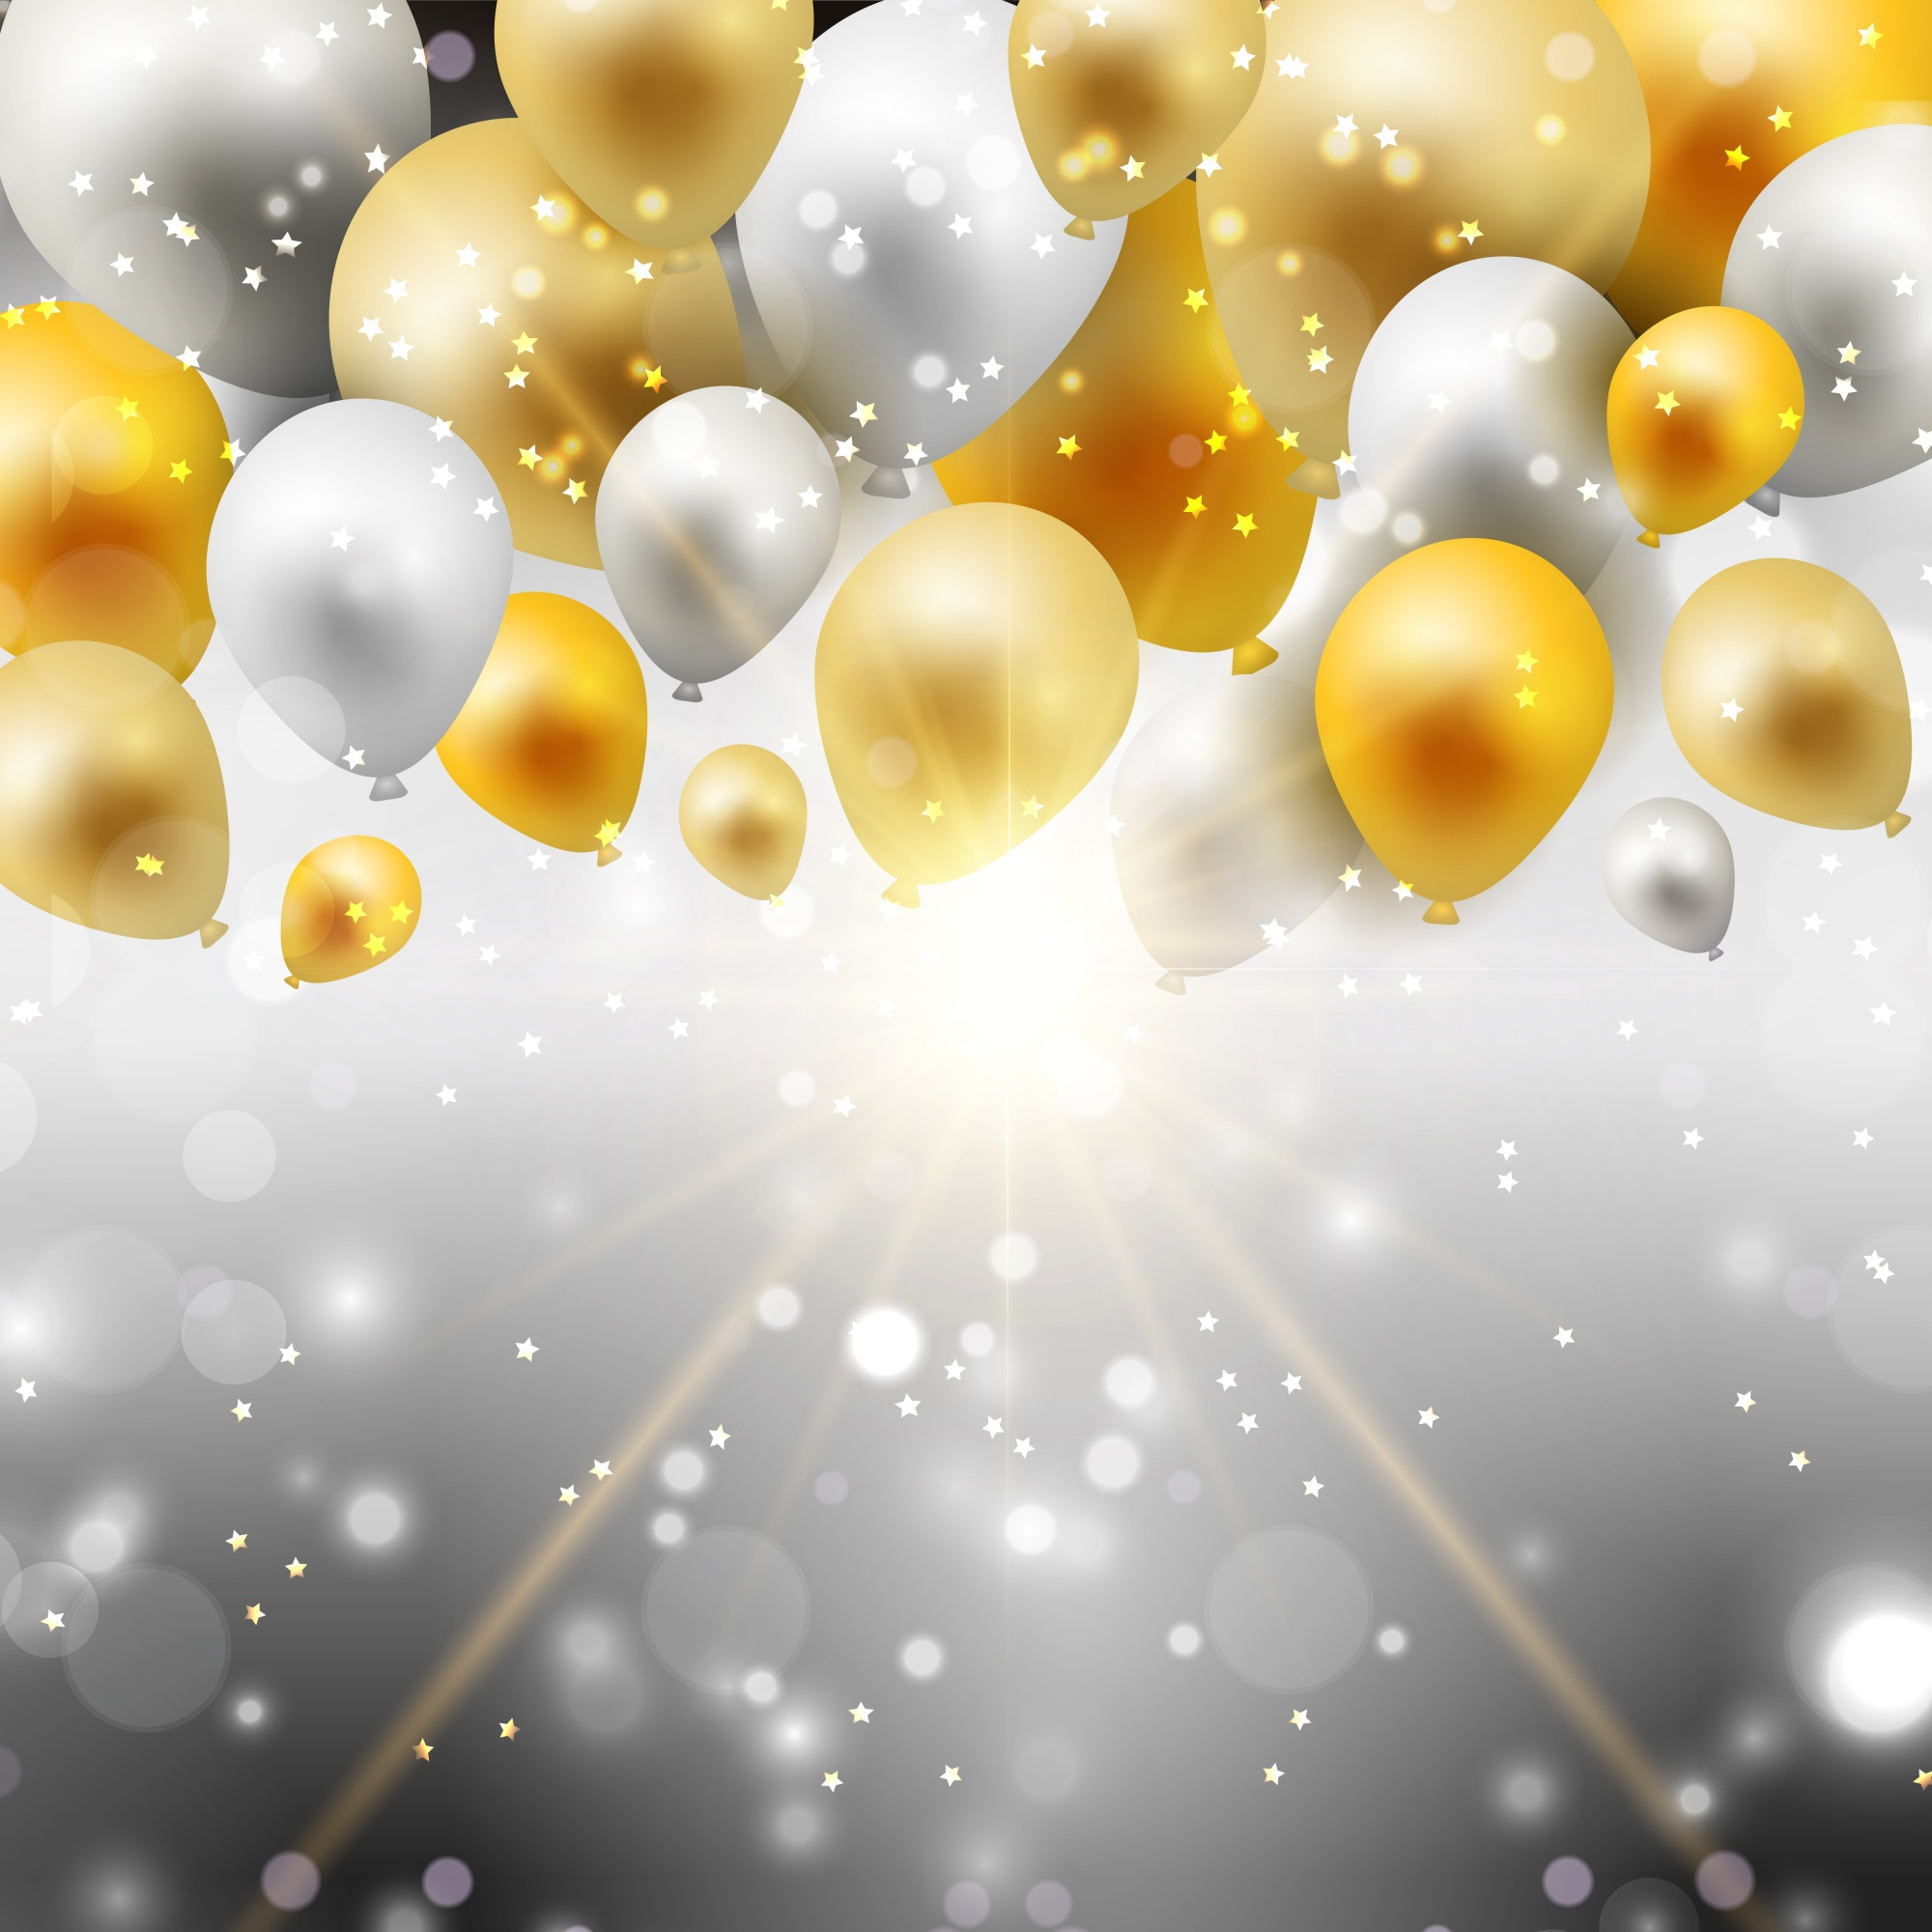 Celebration background with gold and silver balloons